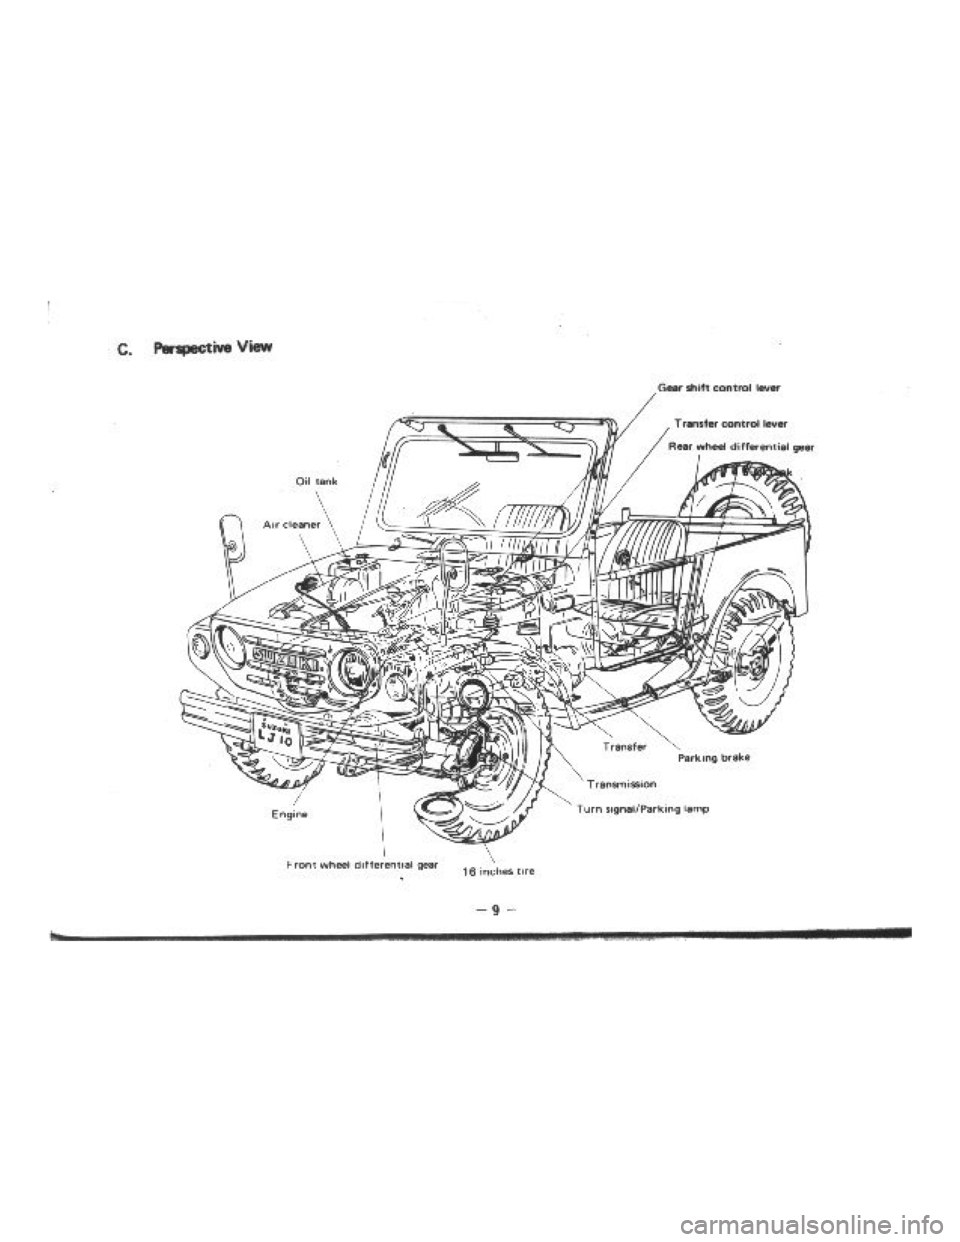 SUZUKI LJ10 1975 1.G Owners Manual